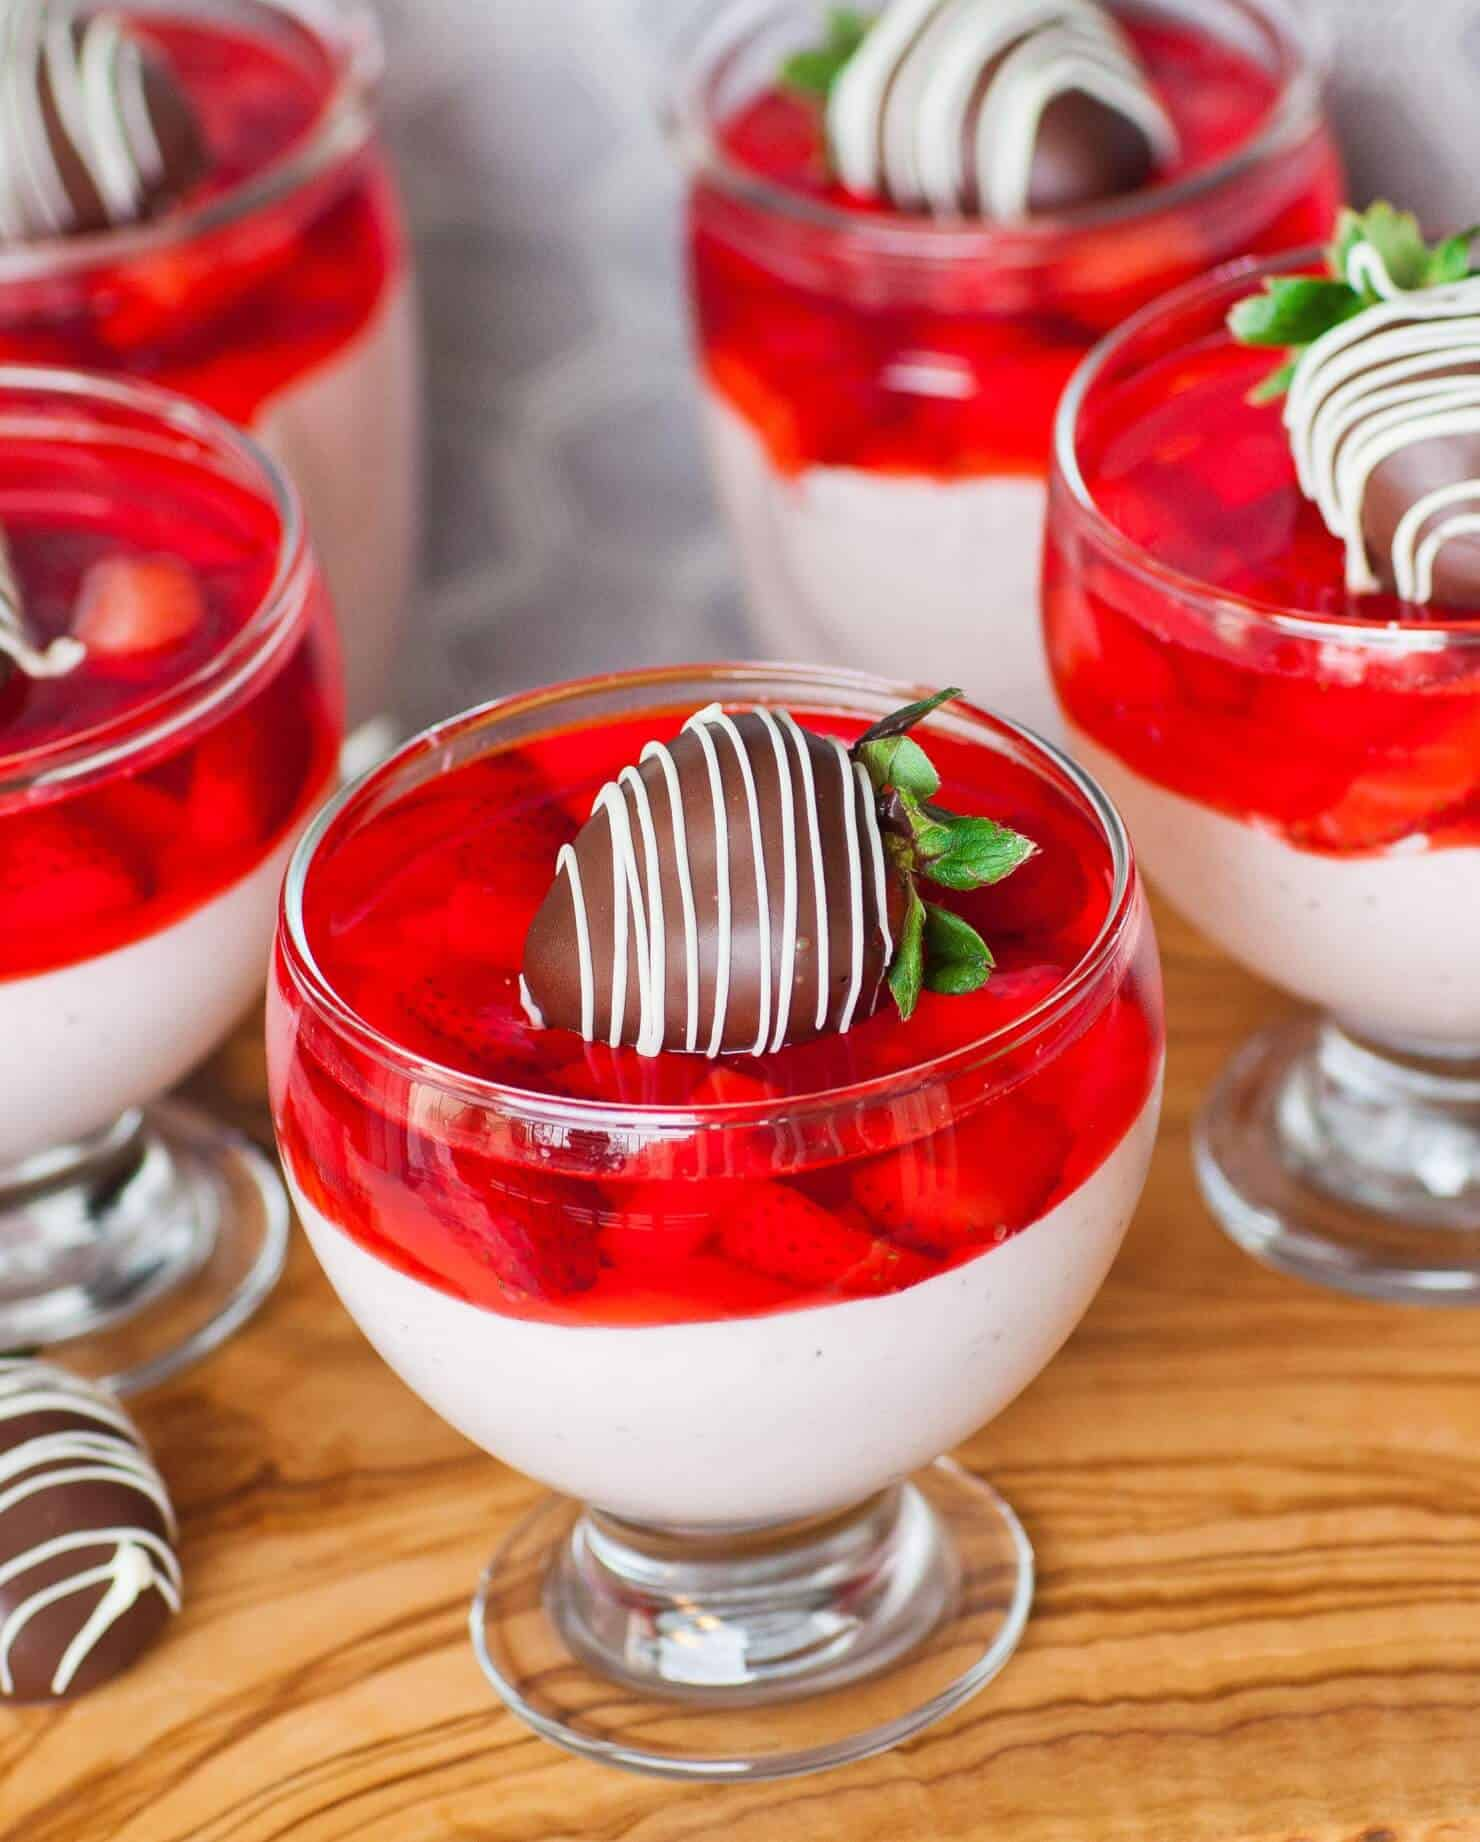 strawberry mousse parfait with chocolate strawberries